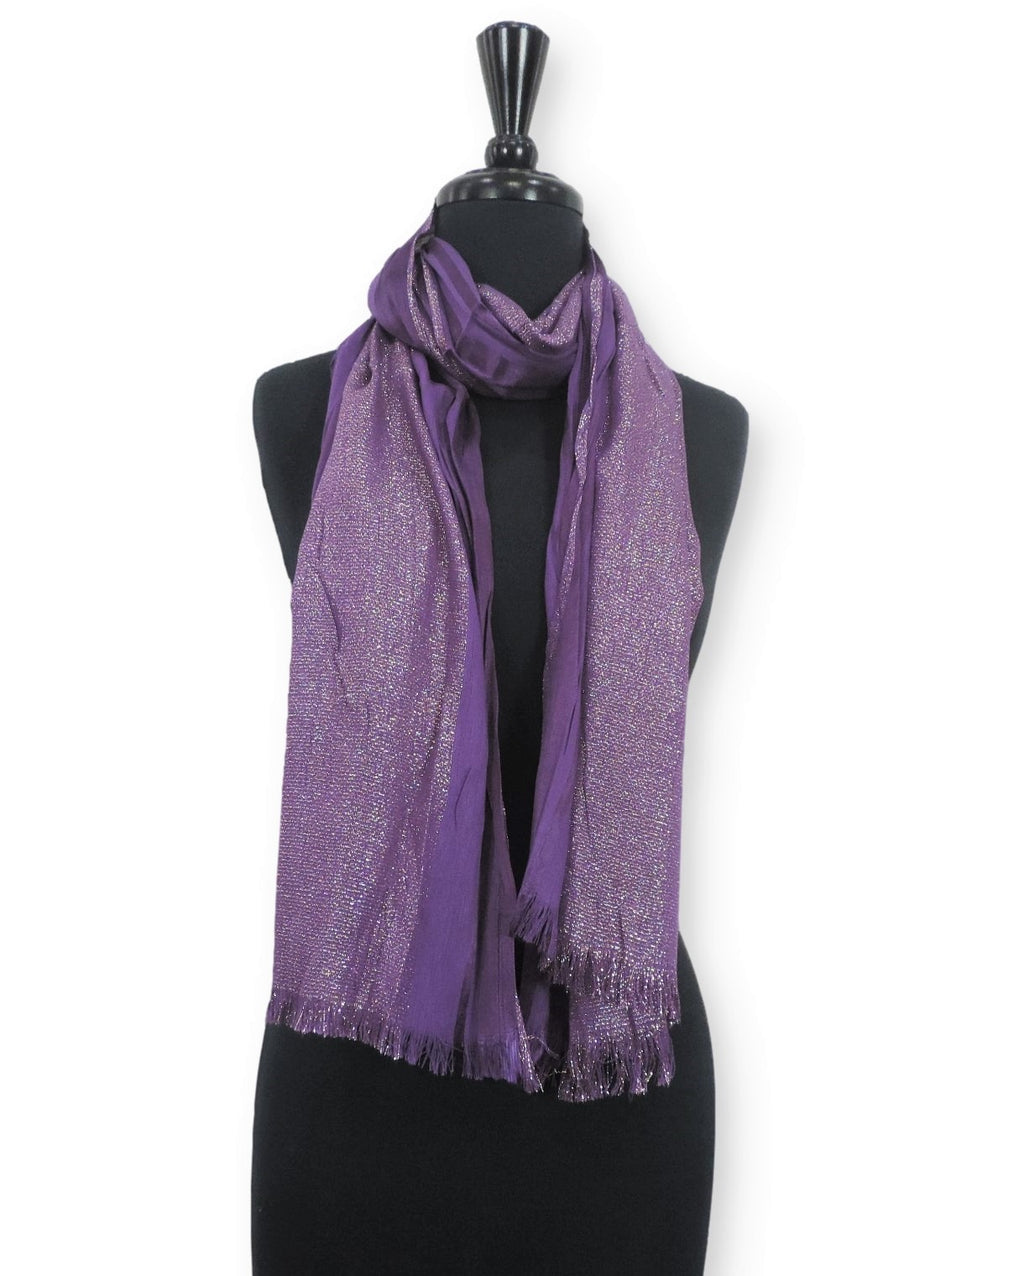 Violet Shimmer Cotton Scarf - Global Trendz Fashion®